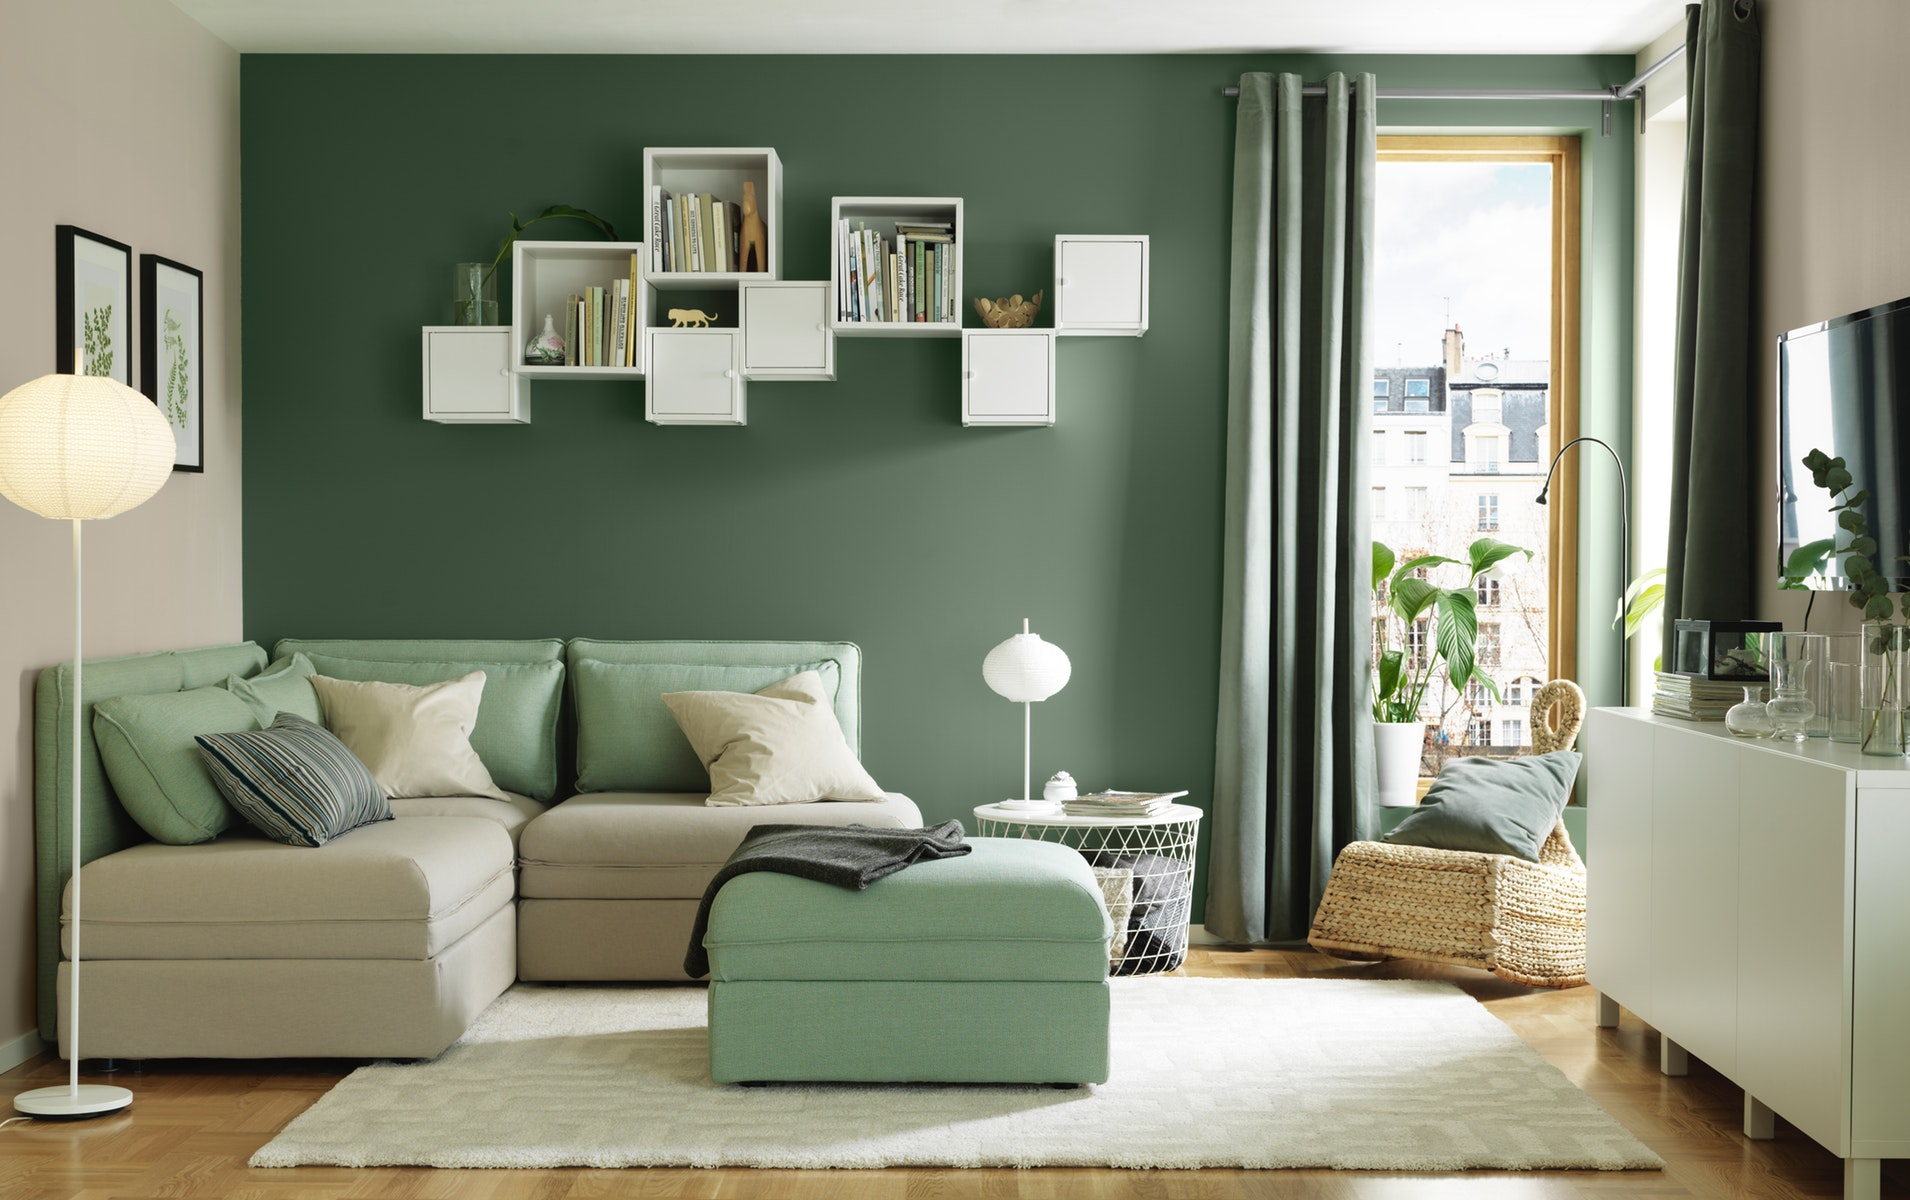 Minimalist Living Room Decoration For Small Homes Ikea Indonesia